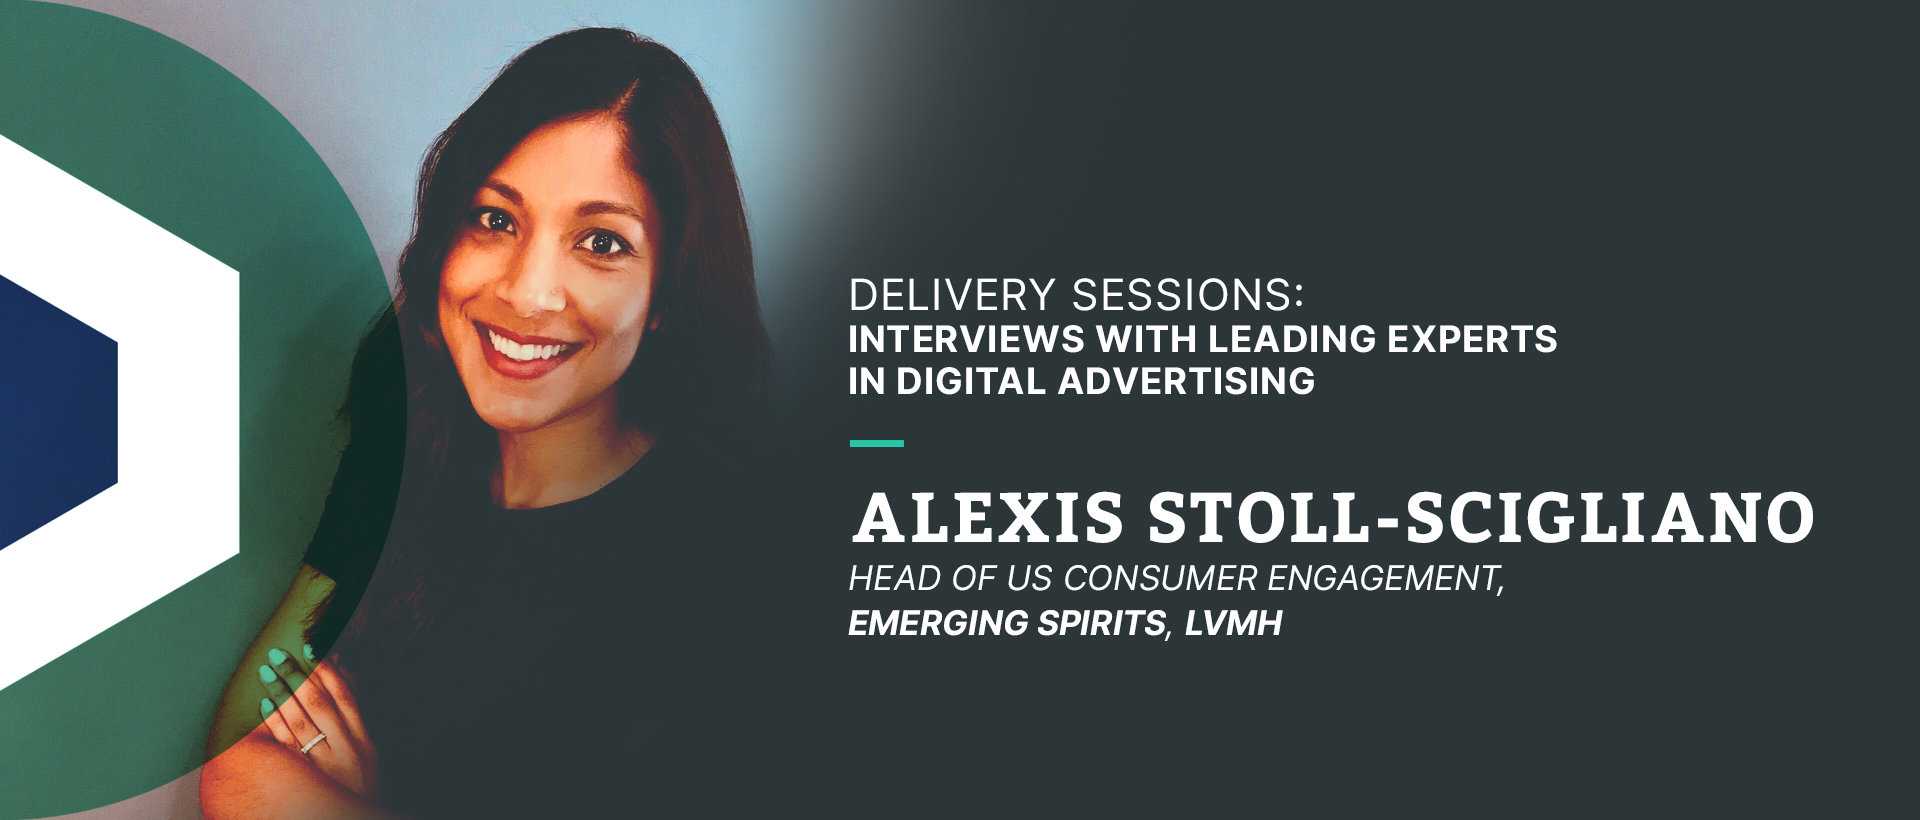 Delivery Sessions Interview with Alexis Stoll-Scigliano, Head of US Consumer Engagement, Emerging Spirits, LVMH